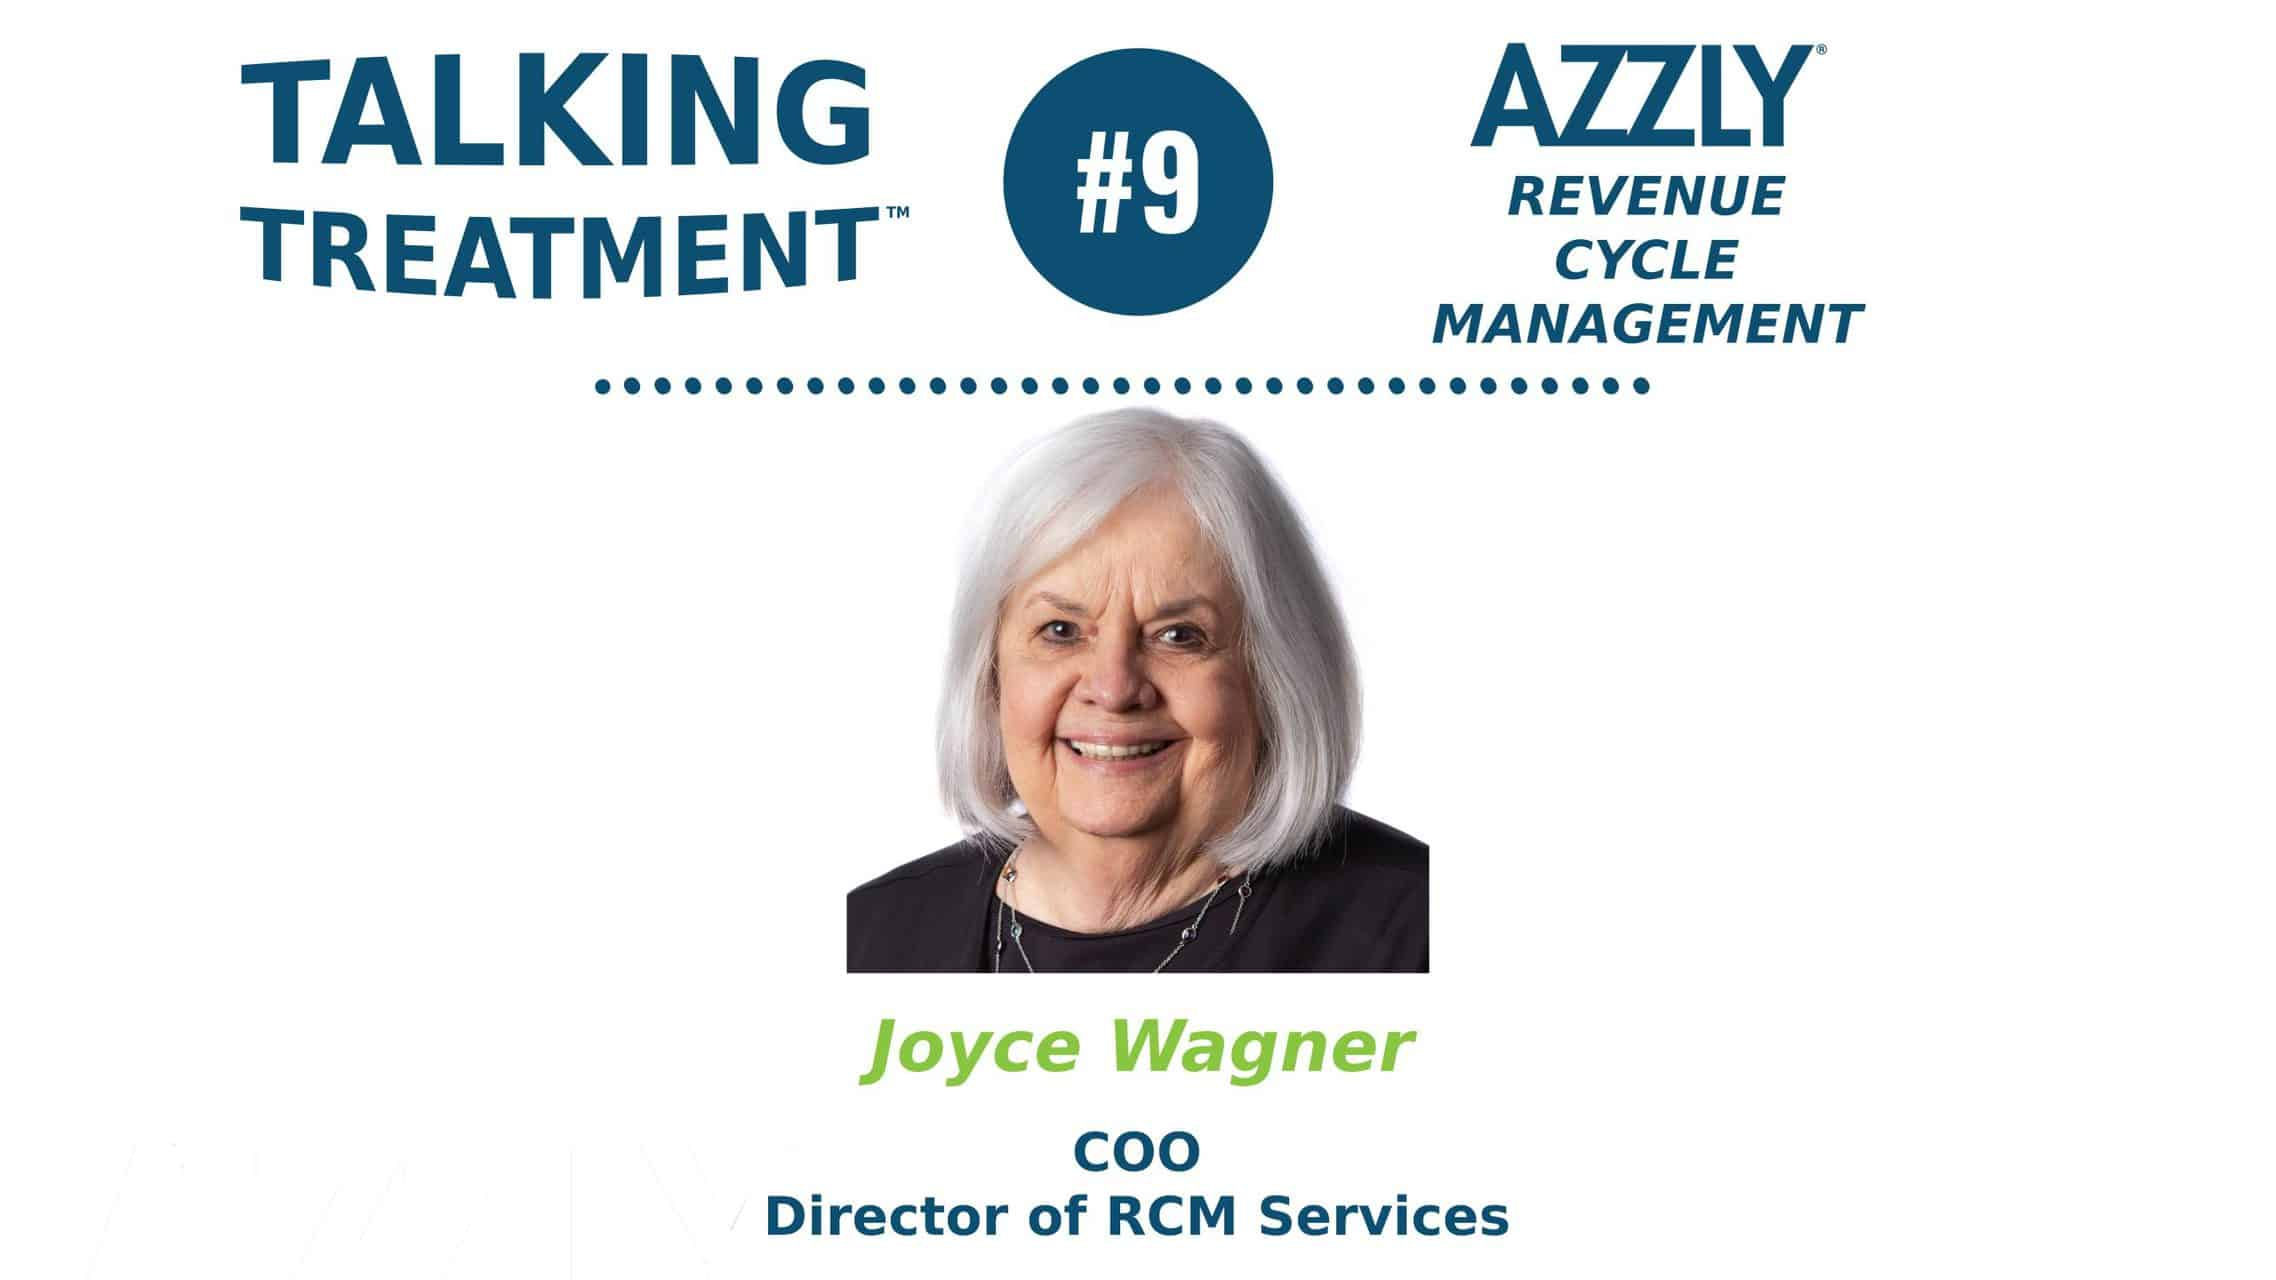 Talking Treatment™ Podcast Episode On AZZLY® Revenue Cycle Management Services